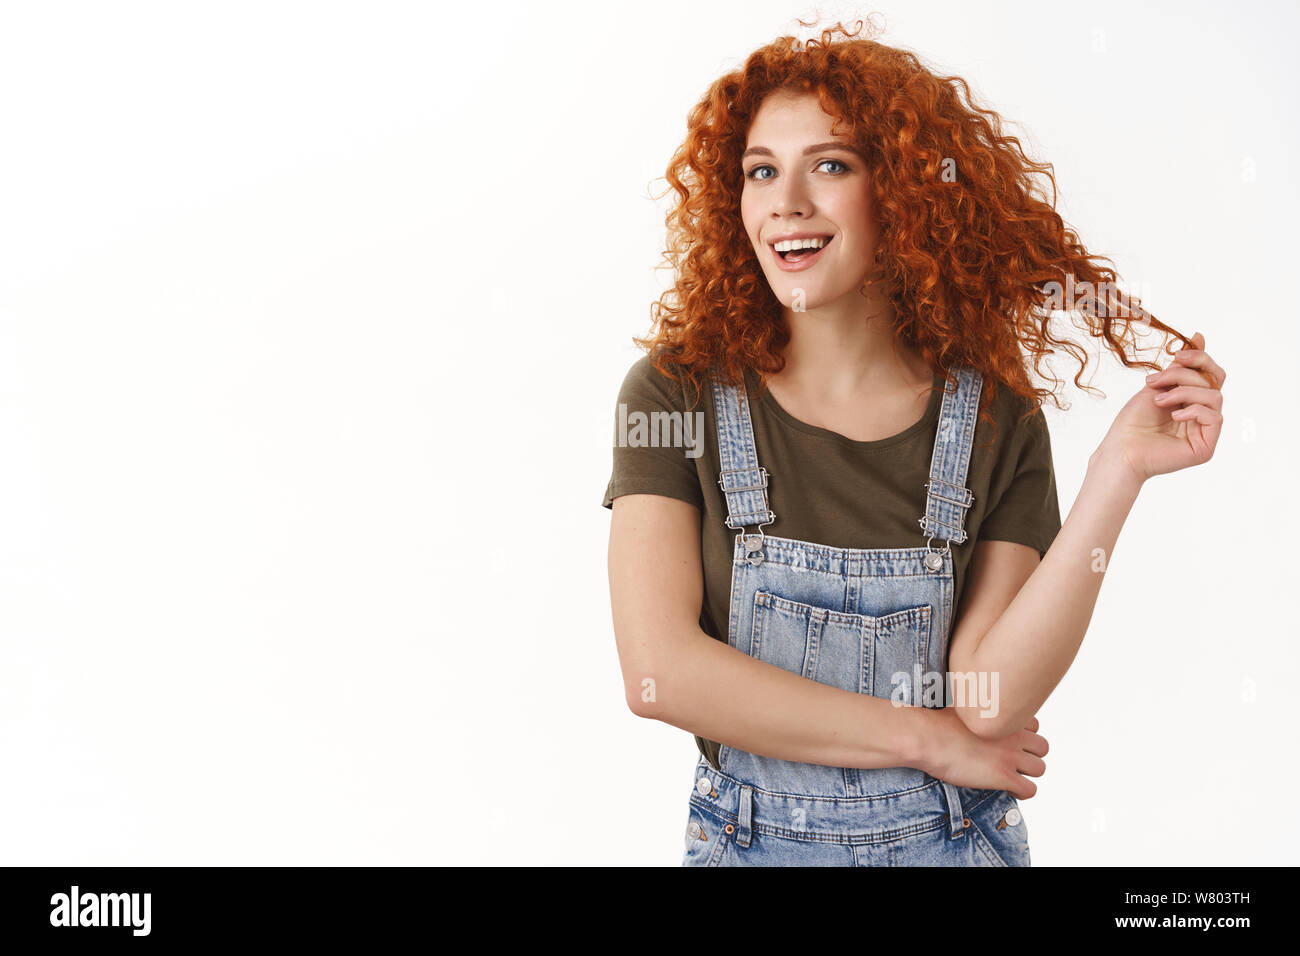 Confident empowered good-looking redhead curly-haired girl, cross arms and smiling self-assured at camera, know her work, giving professional vibes, s Stock Photo